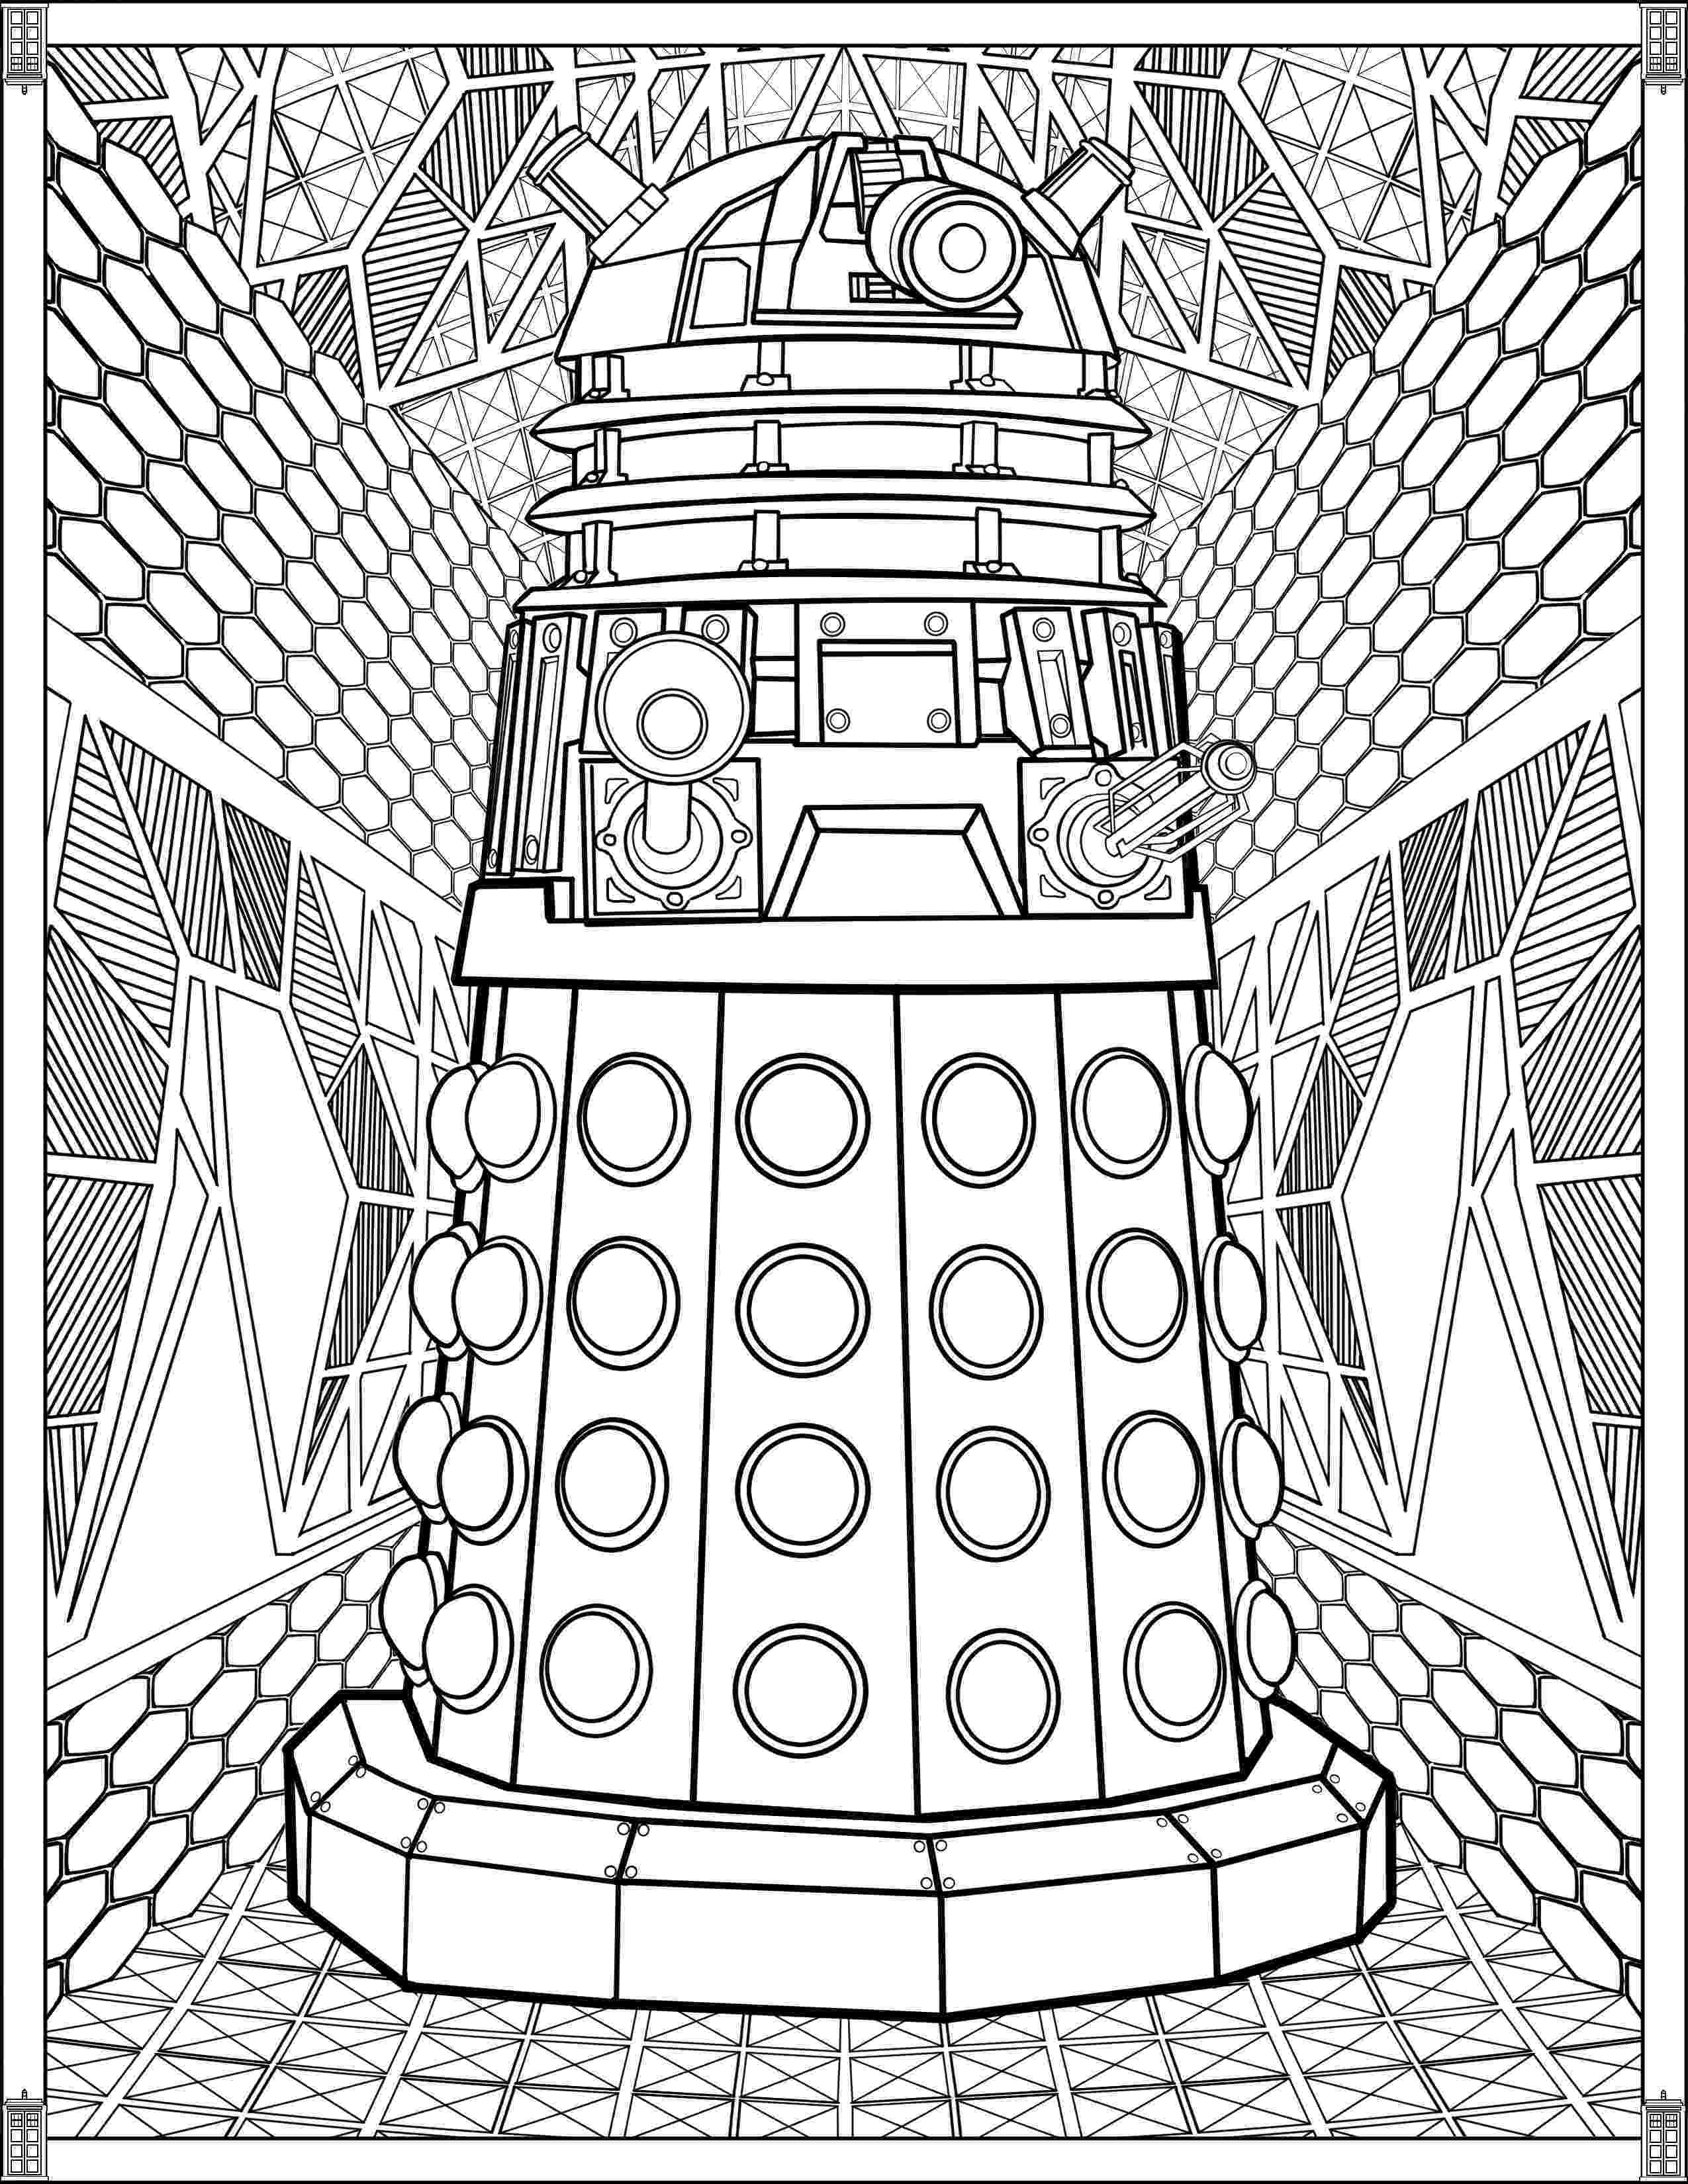 tardis colouring pages doctor who wibbly wobbly timey wimey coloring pages tardis pages colouring